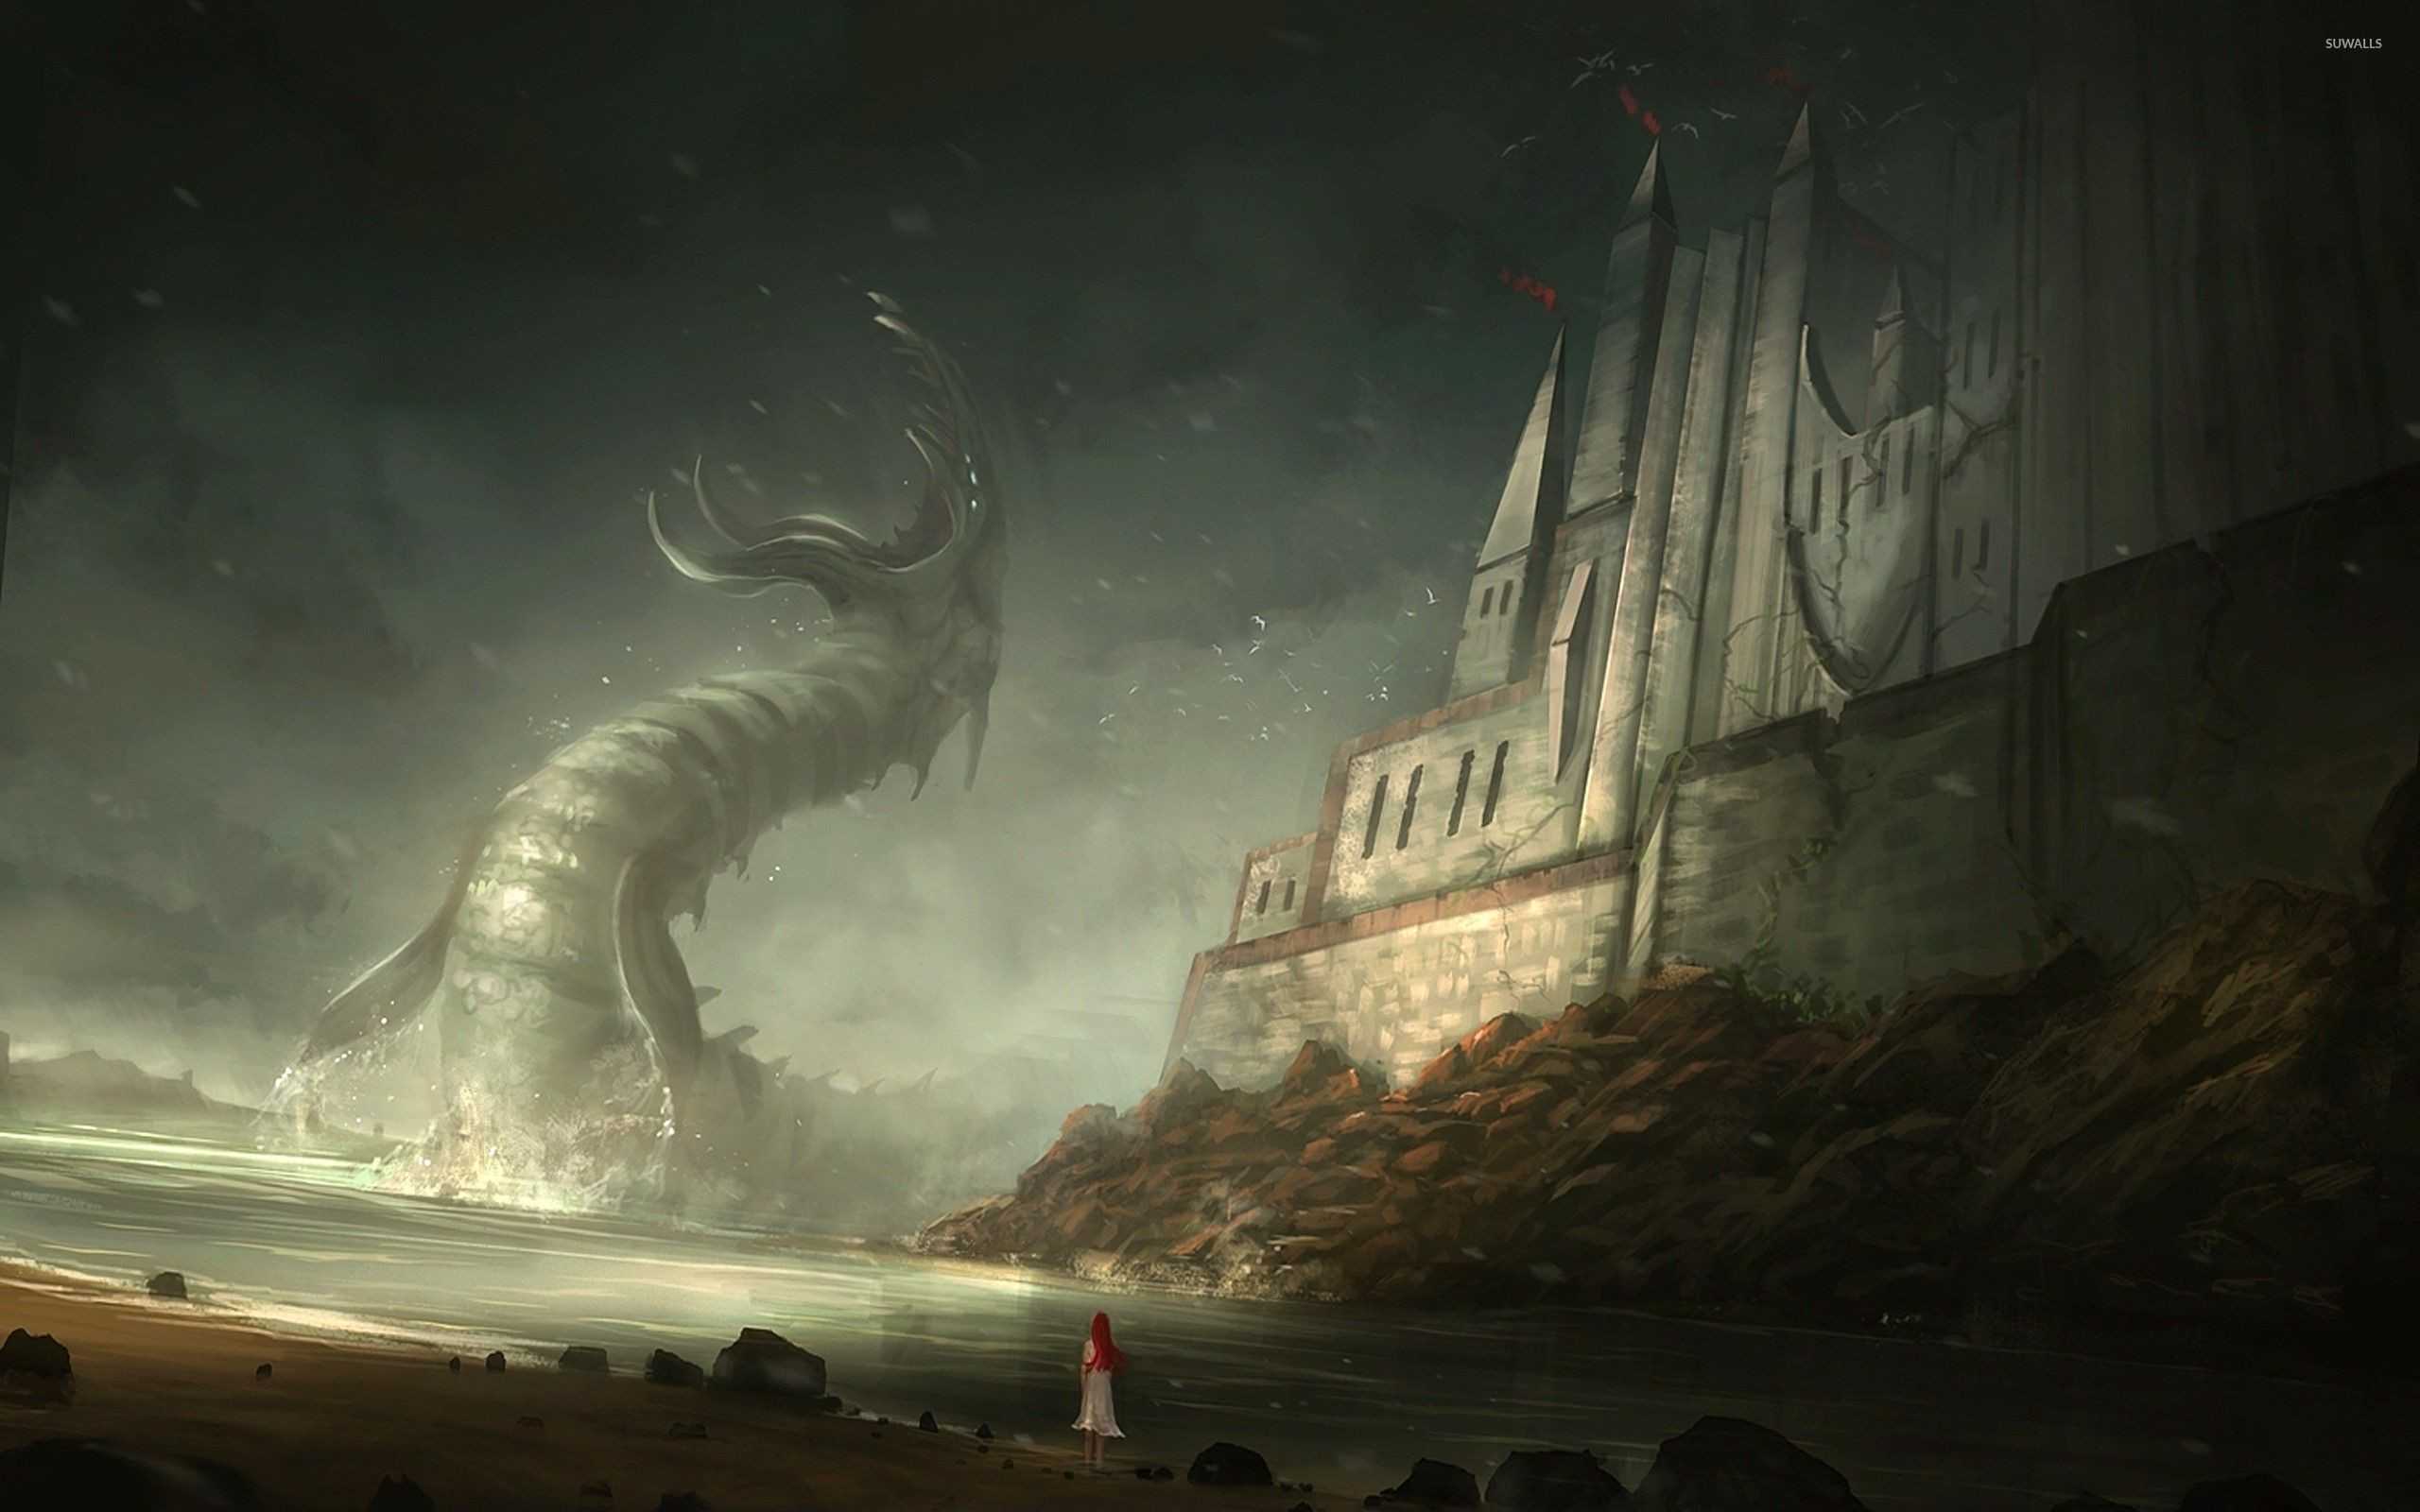 Res: 2560x1600, wallpaper.wiki-Cthulhu-HD-Backgrounds-PIC-WPE005263 2693x1684